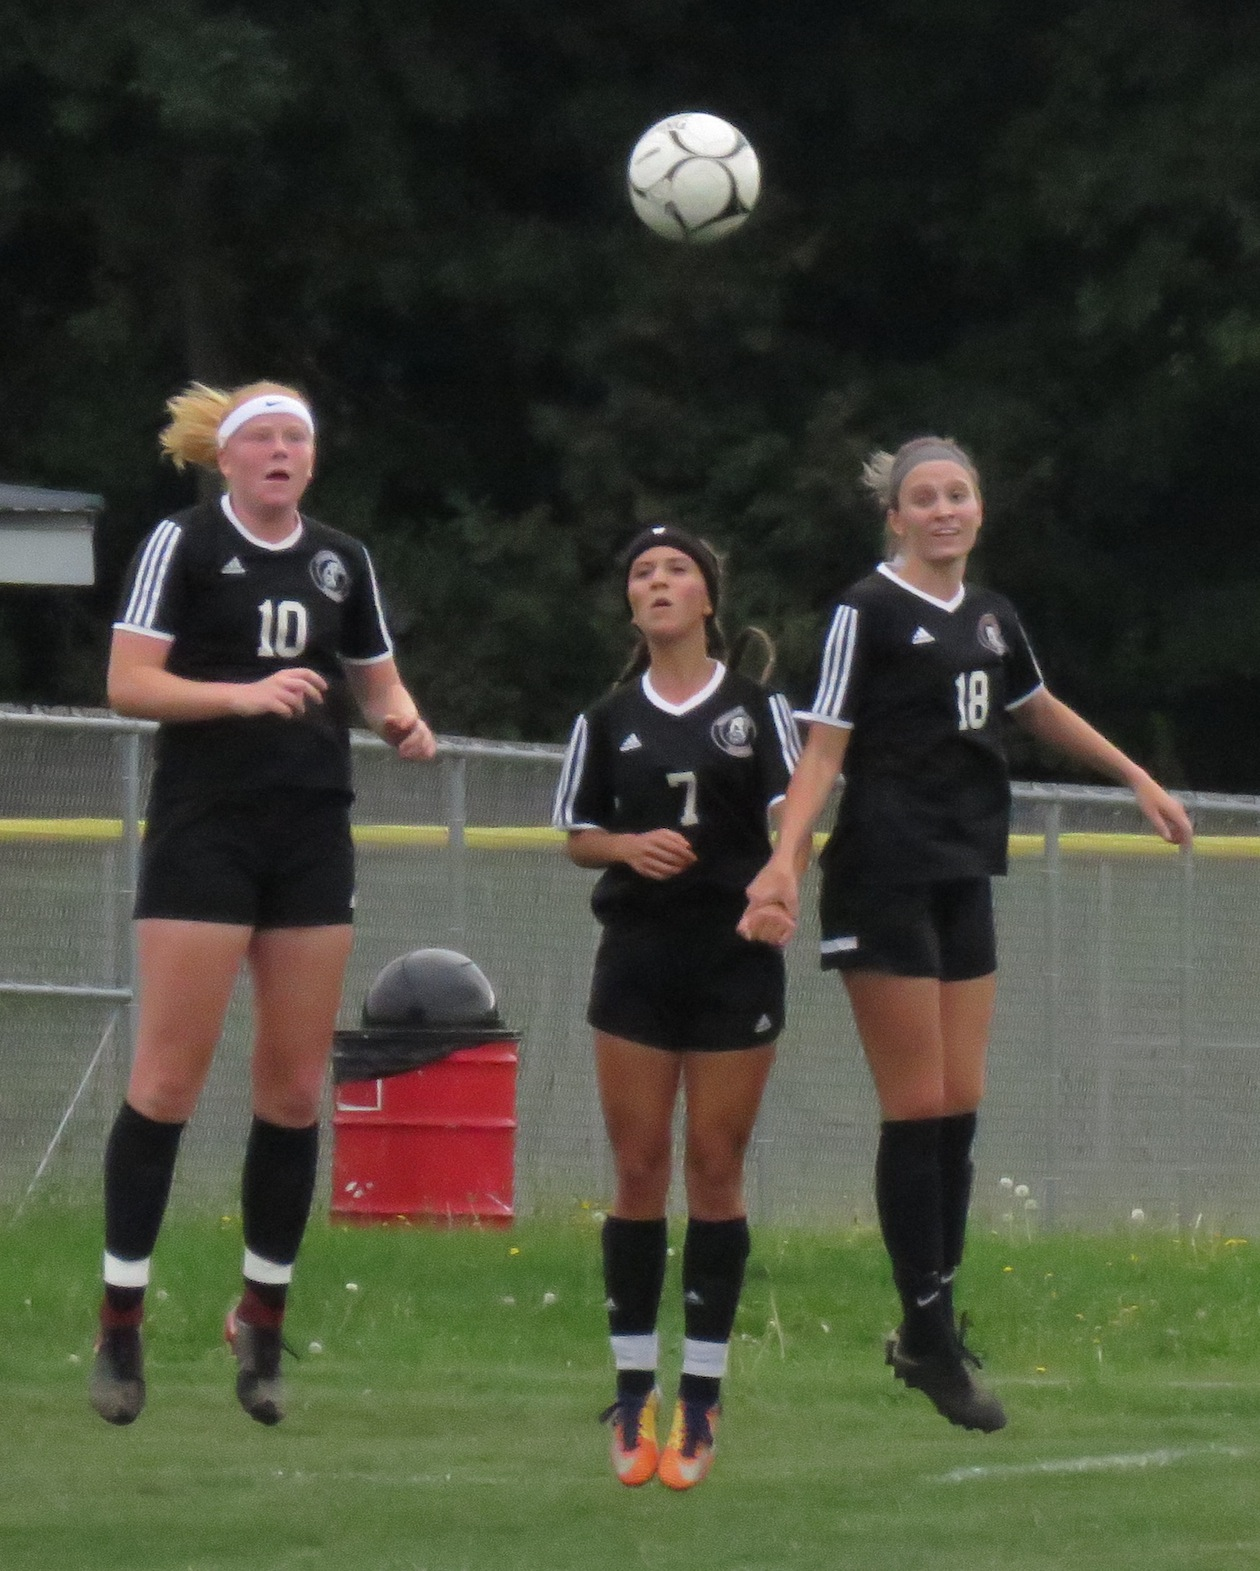 The trio of (from left) Erin Weir, Paige DiCarlo and Samantha Maghrak defend a free kick during a game versus Lewiston-Porter this season. (Photos by David Yarger)